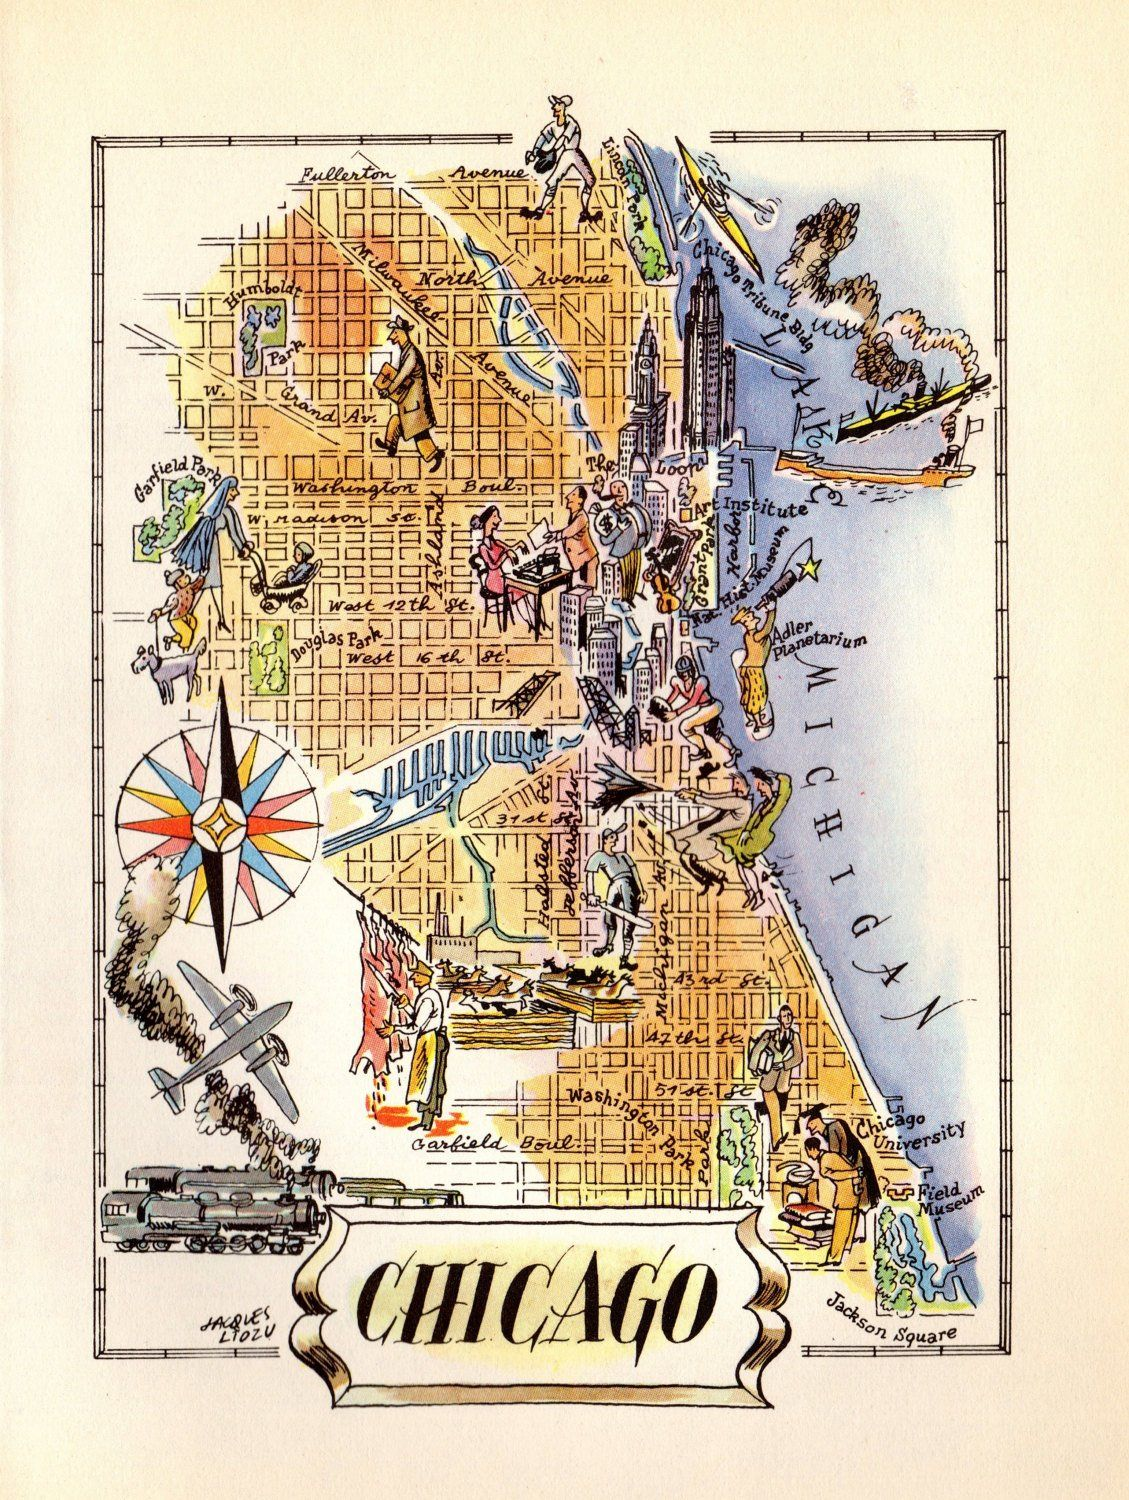 Chicago Illinois Vintage Antique Map Wall Art Home Decor Gift Ideas Canvas Print